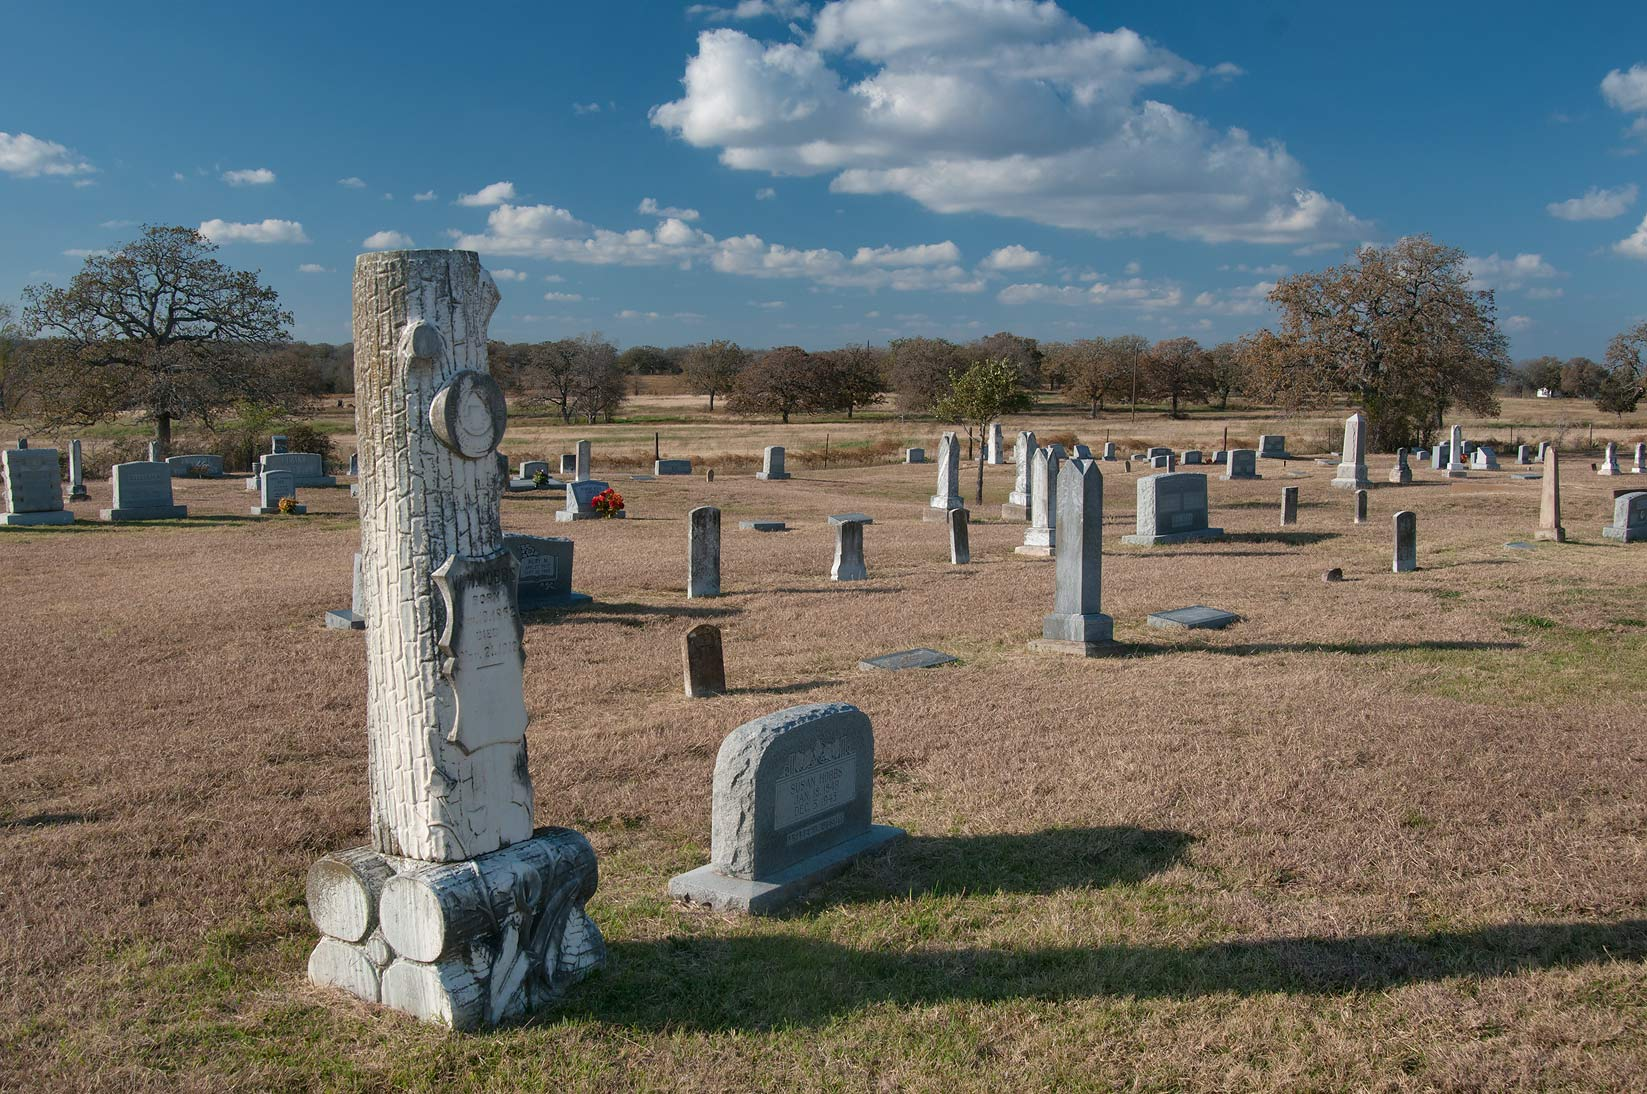 Bryant Station - Bryan, Texas  - Sharp Cemetery at Rd. FM 487. Texas